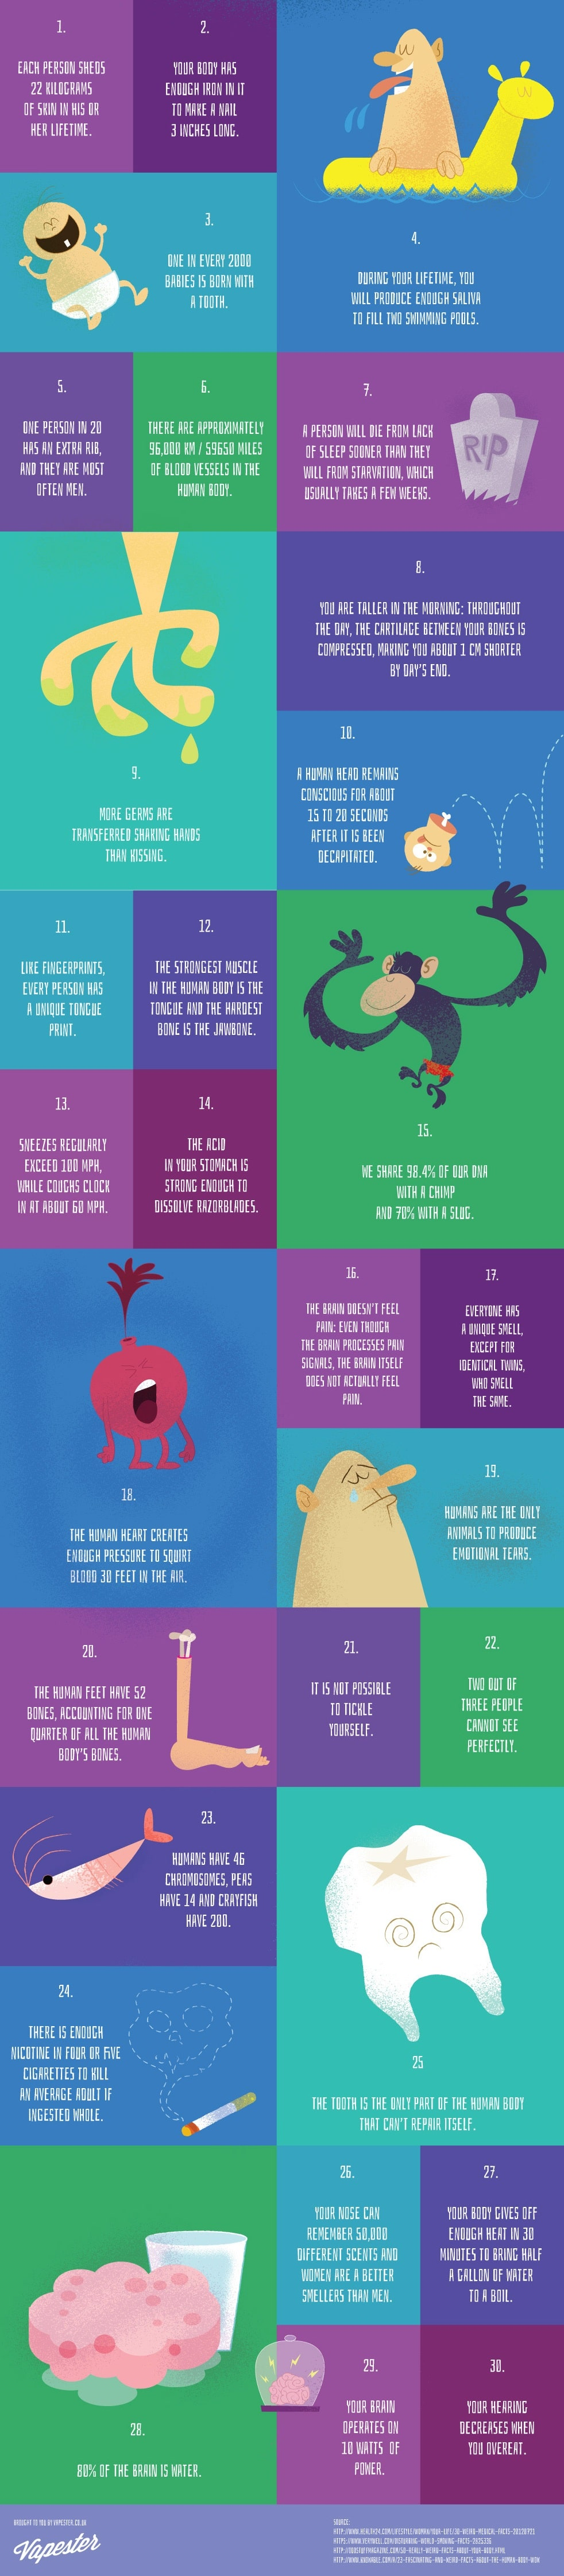 Weirdly-Fascinating-Facts-Part2